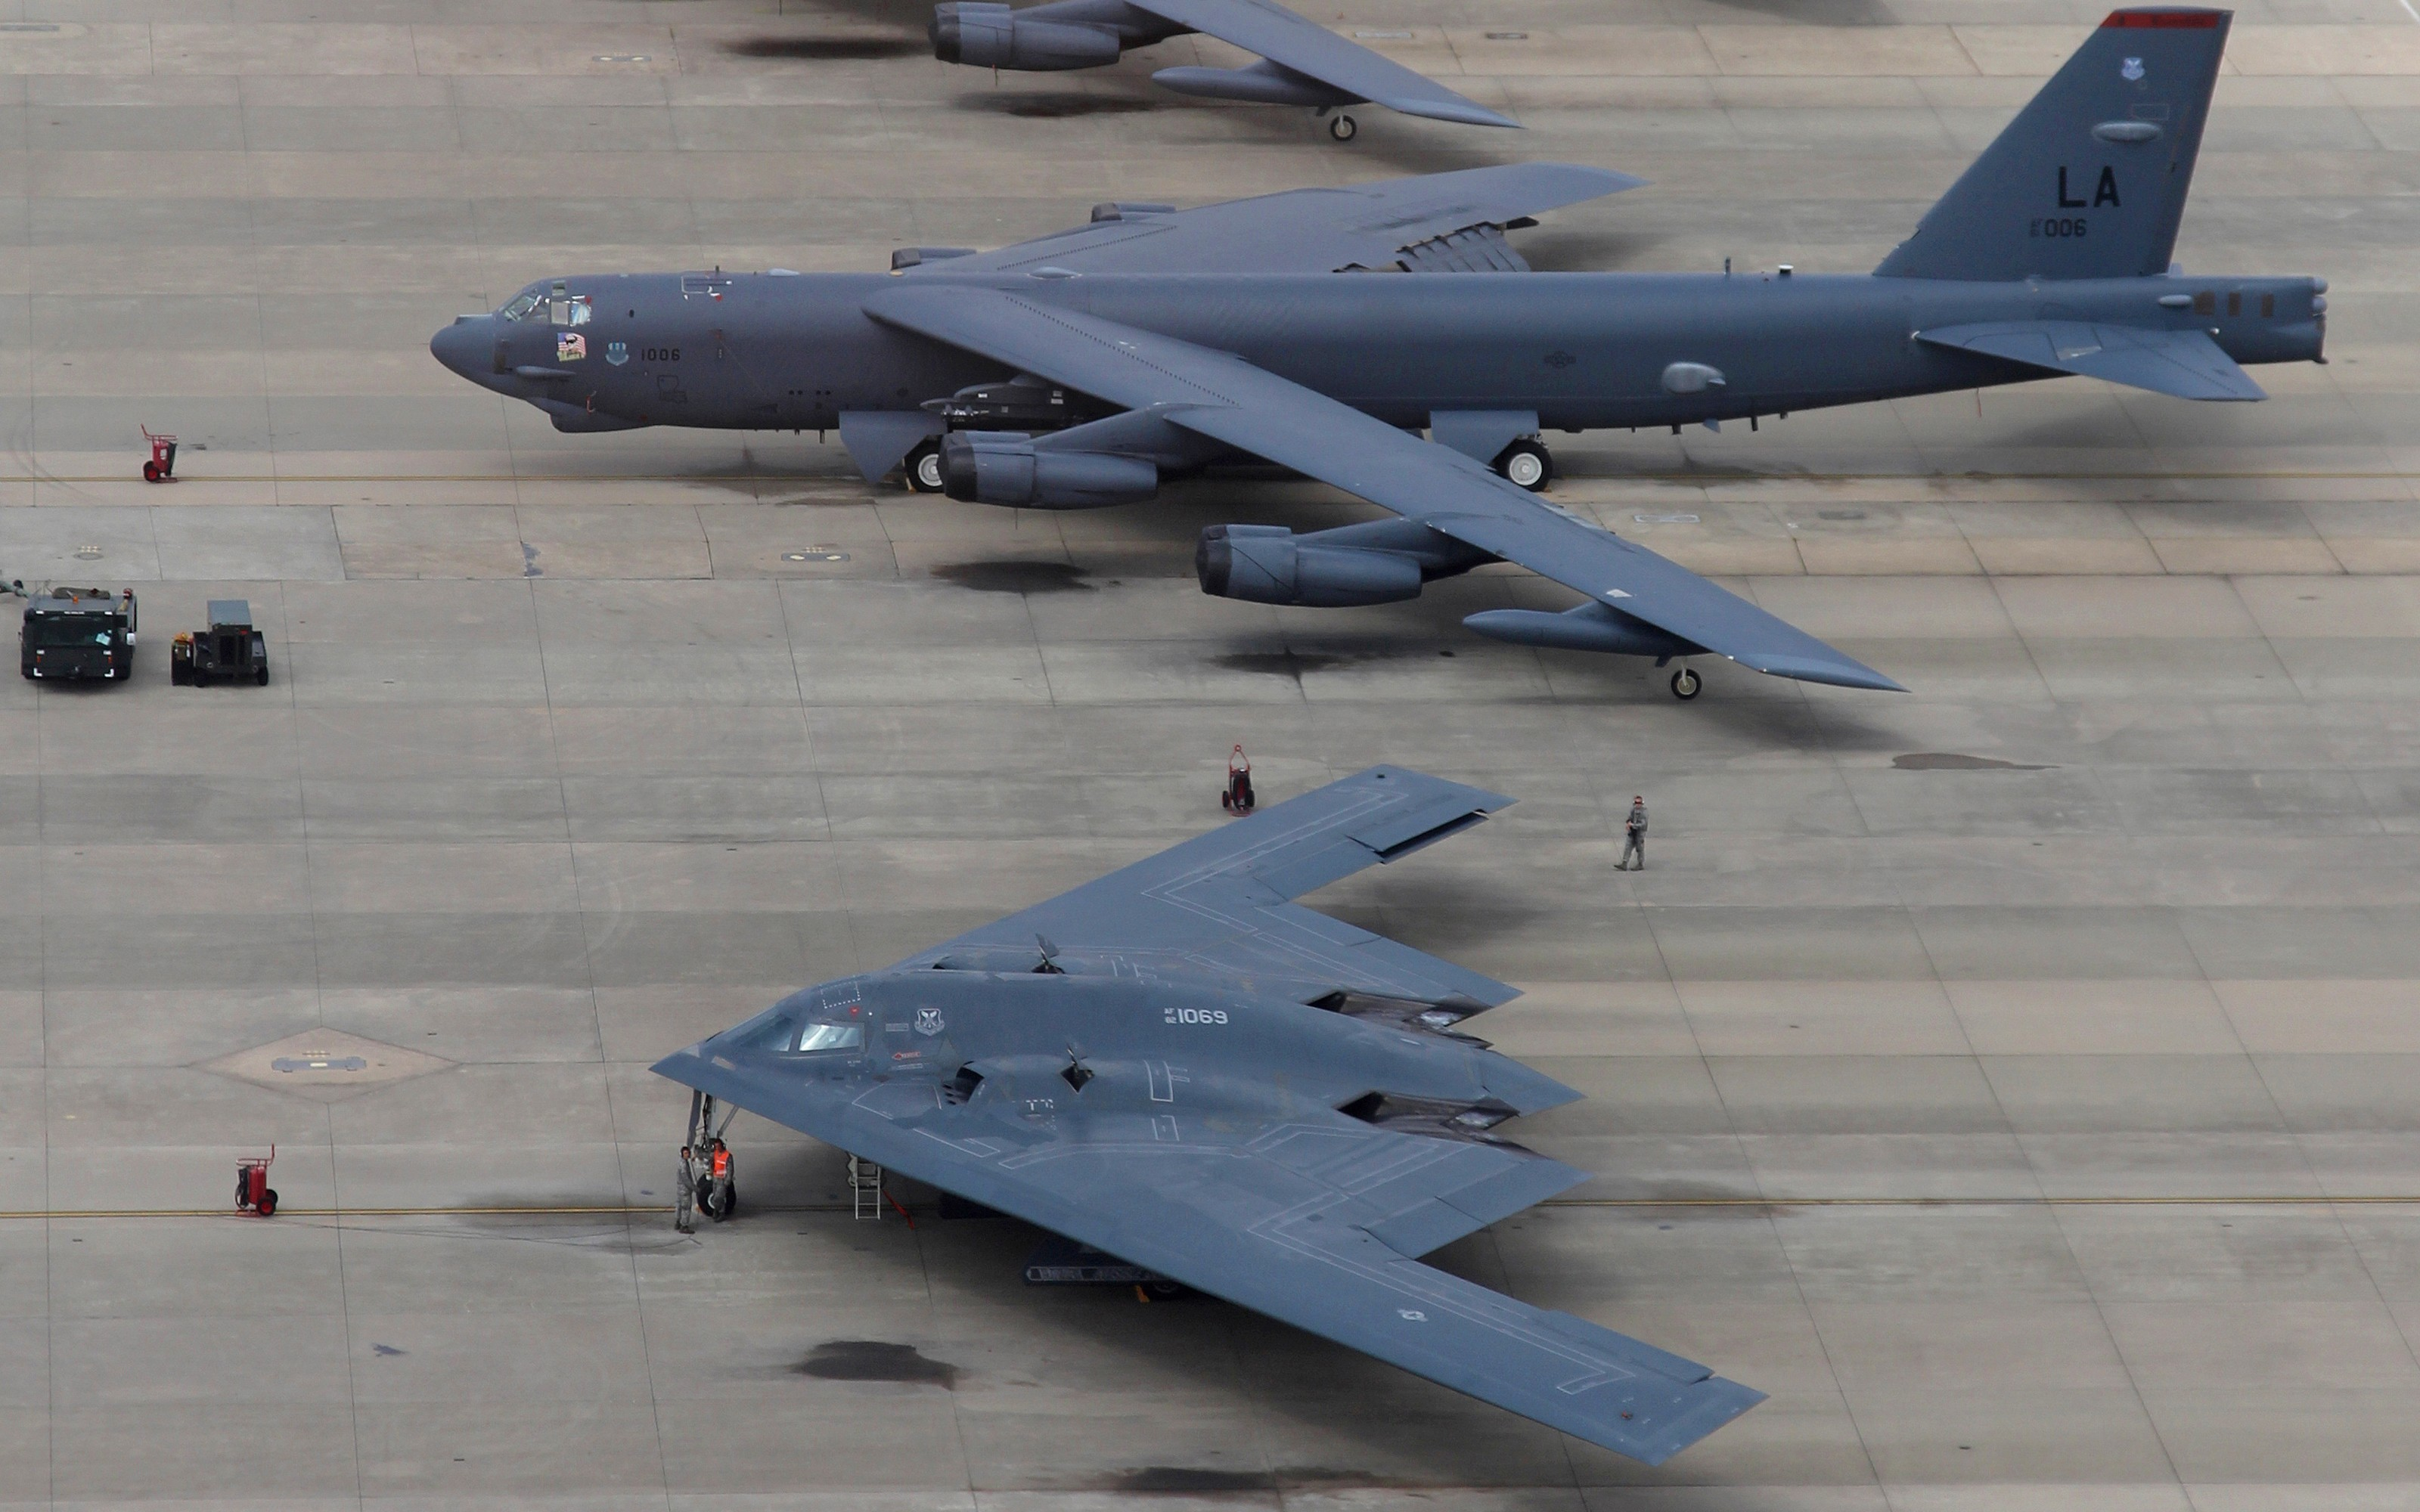 B 27 bomber photos US Air Force unveils picture of new stealth bomber B-21 to replace B